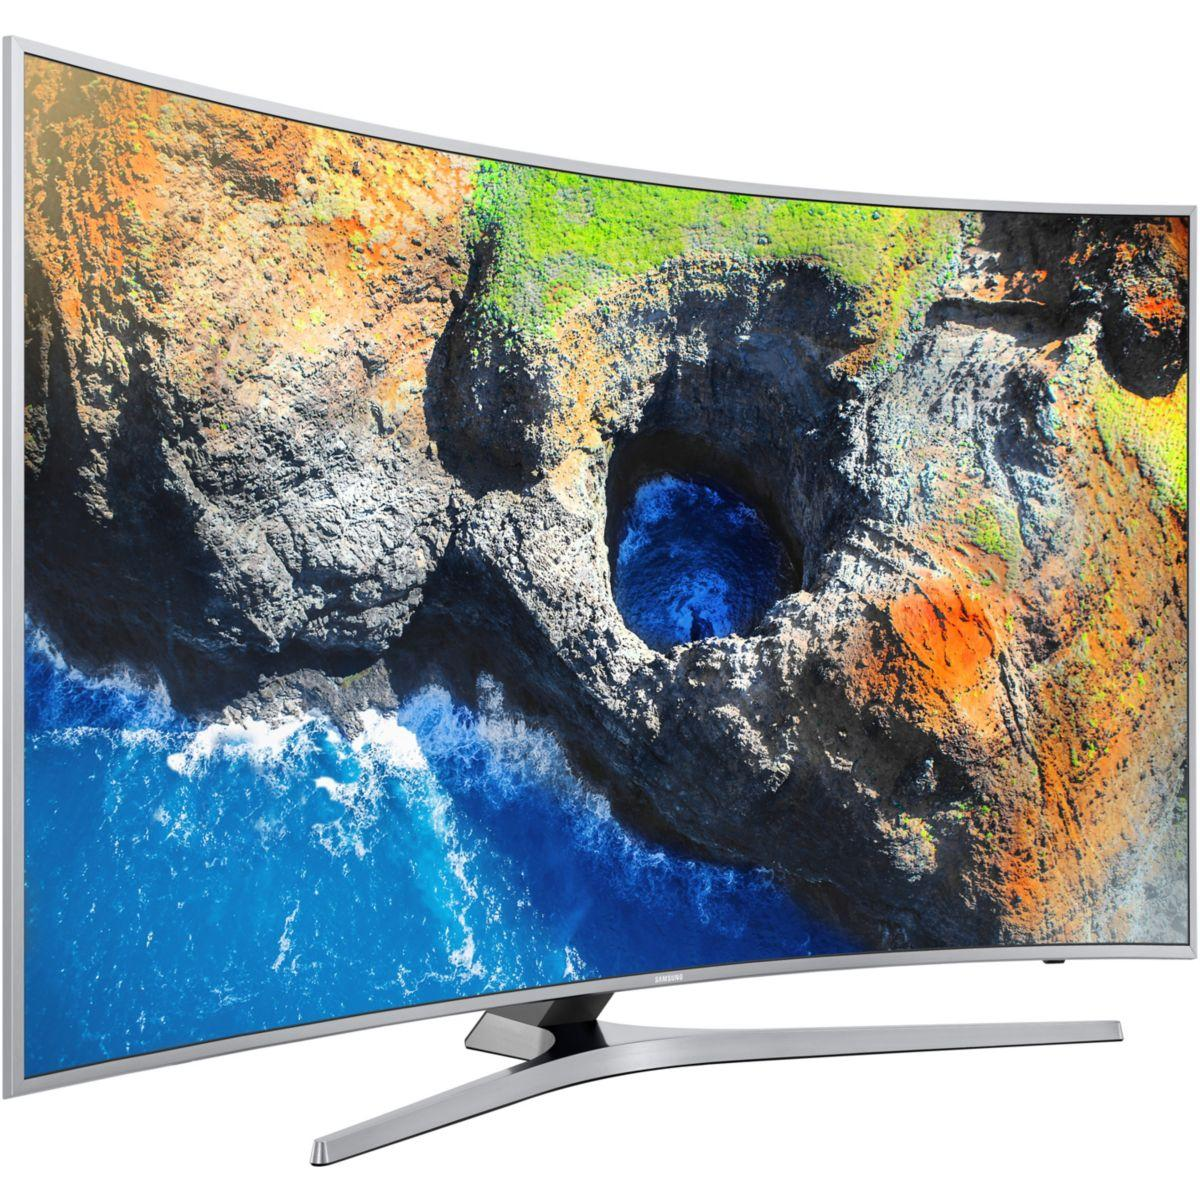 Tv samsung ue49mu6505 4k hdr incurve sma (photo)